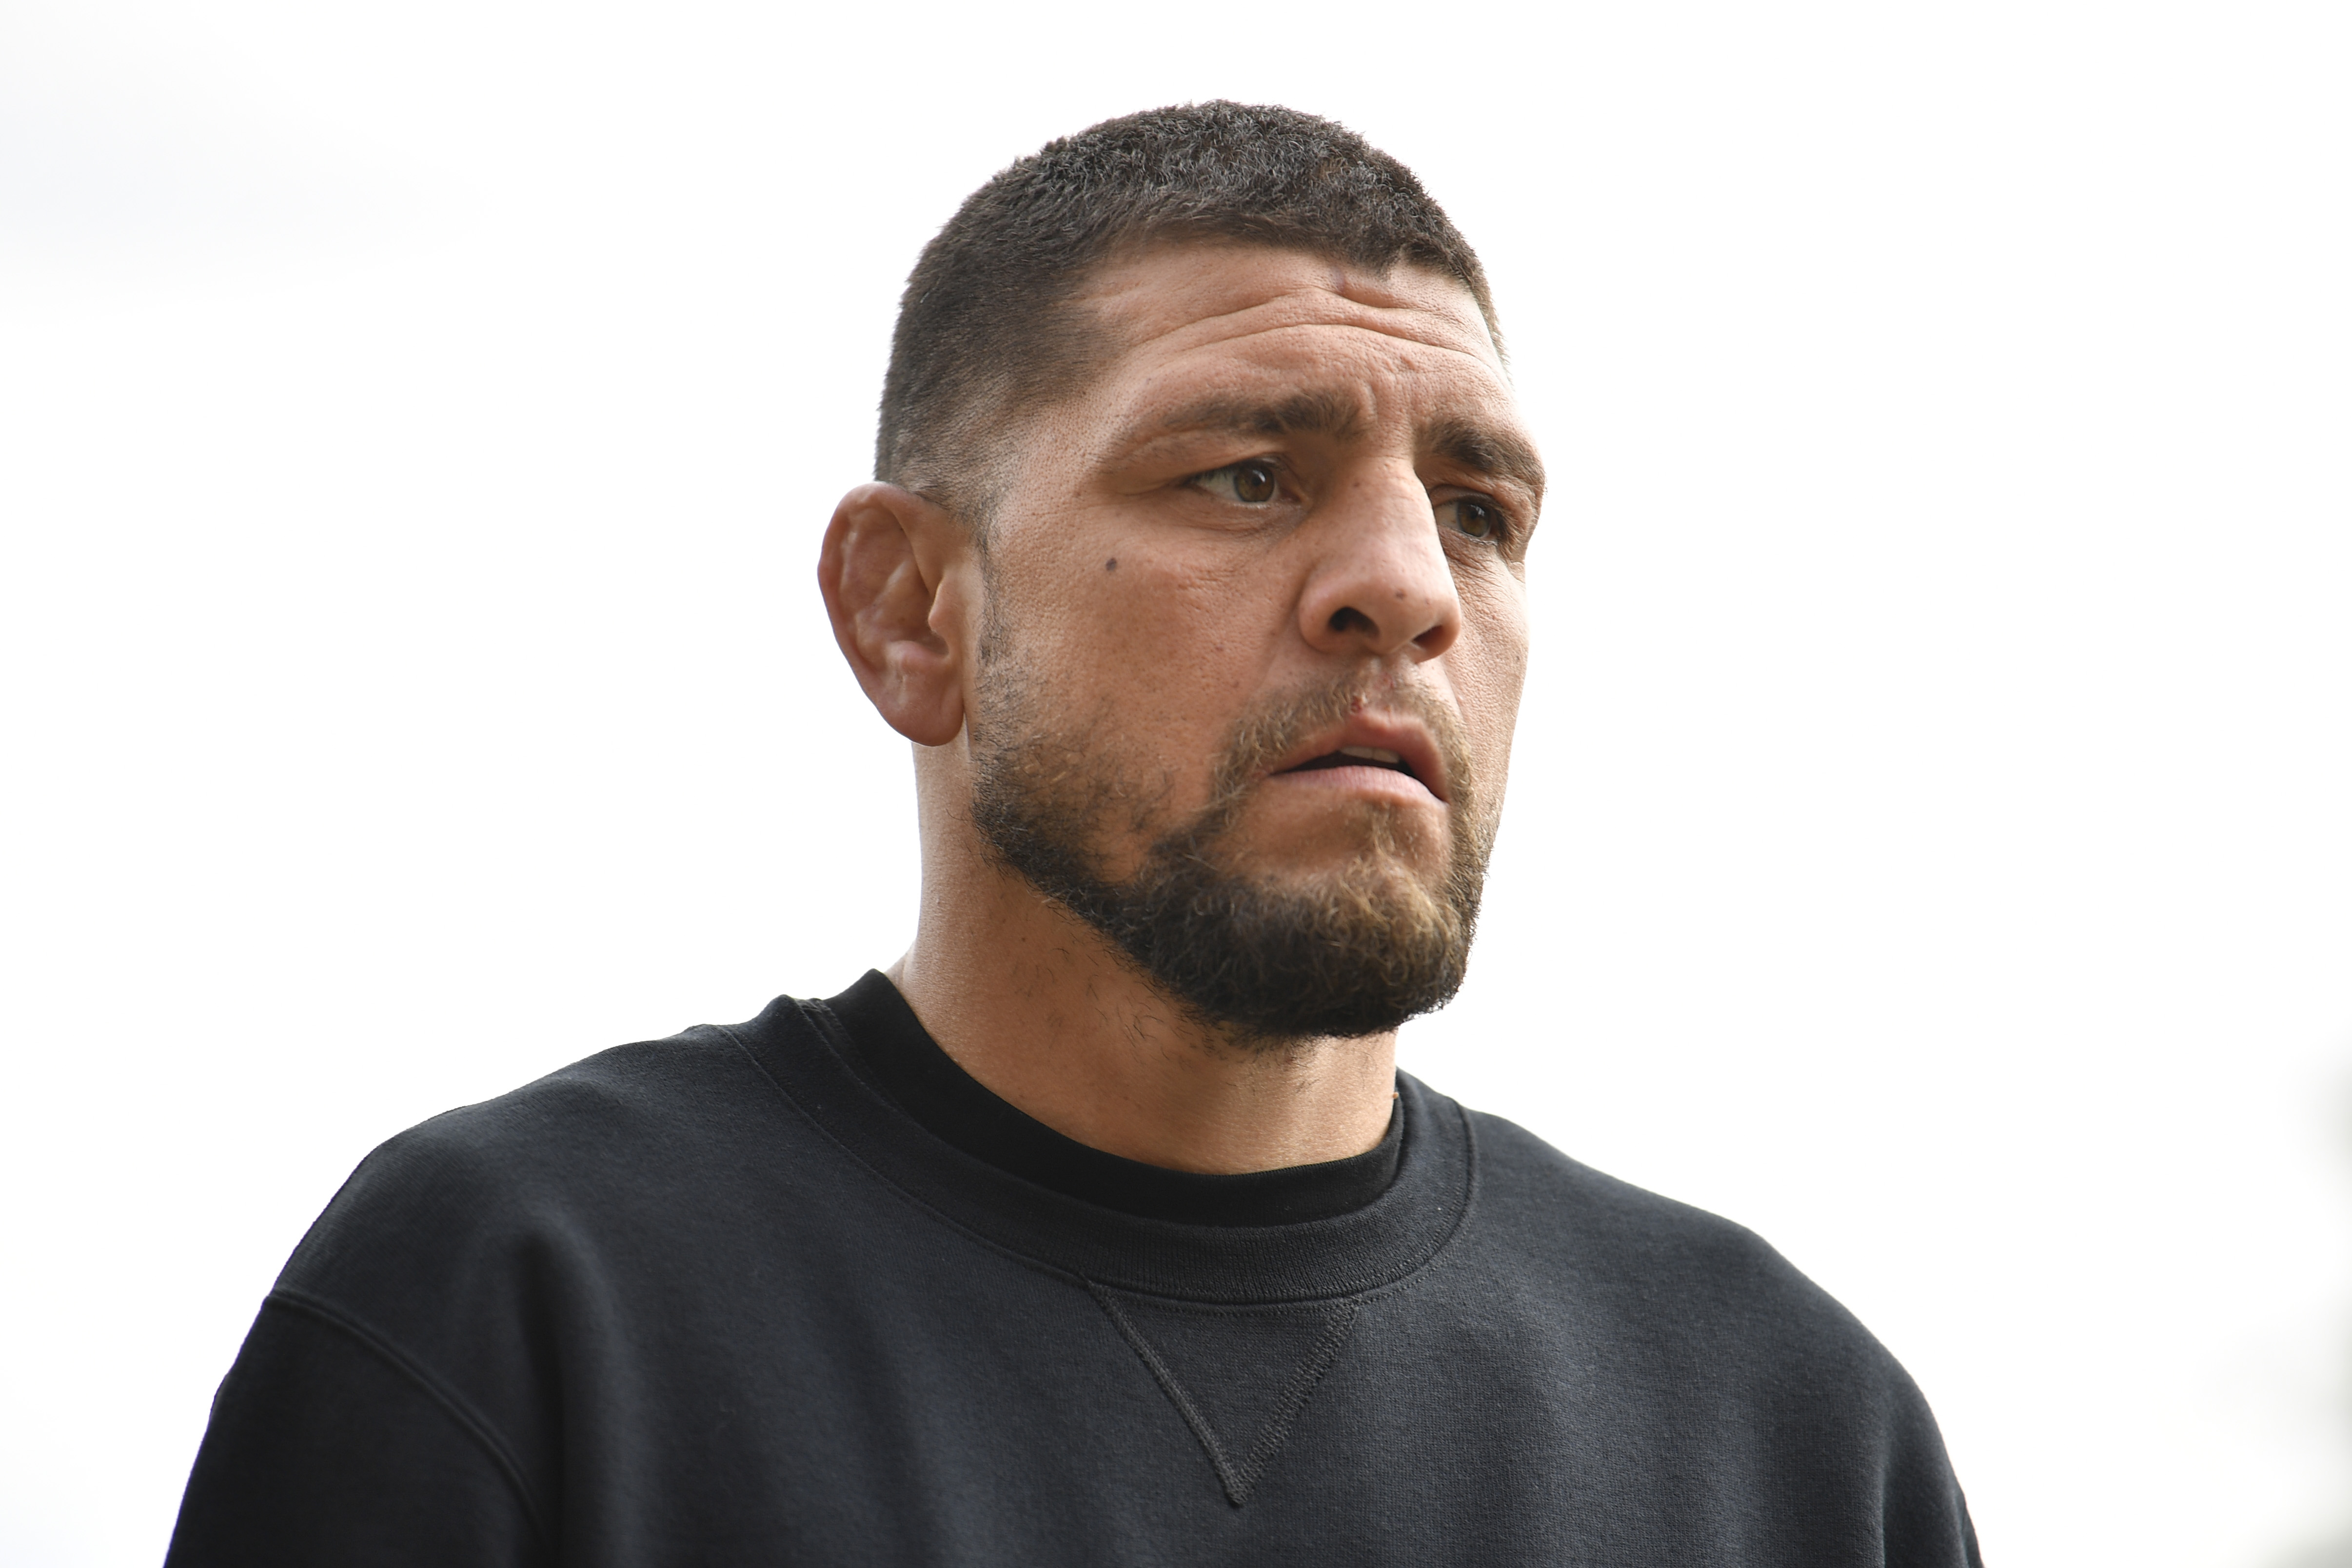 Nick Diaz speaks openly about his struggles in his chosen profession.